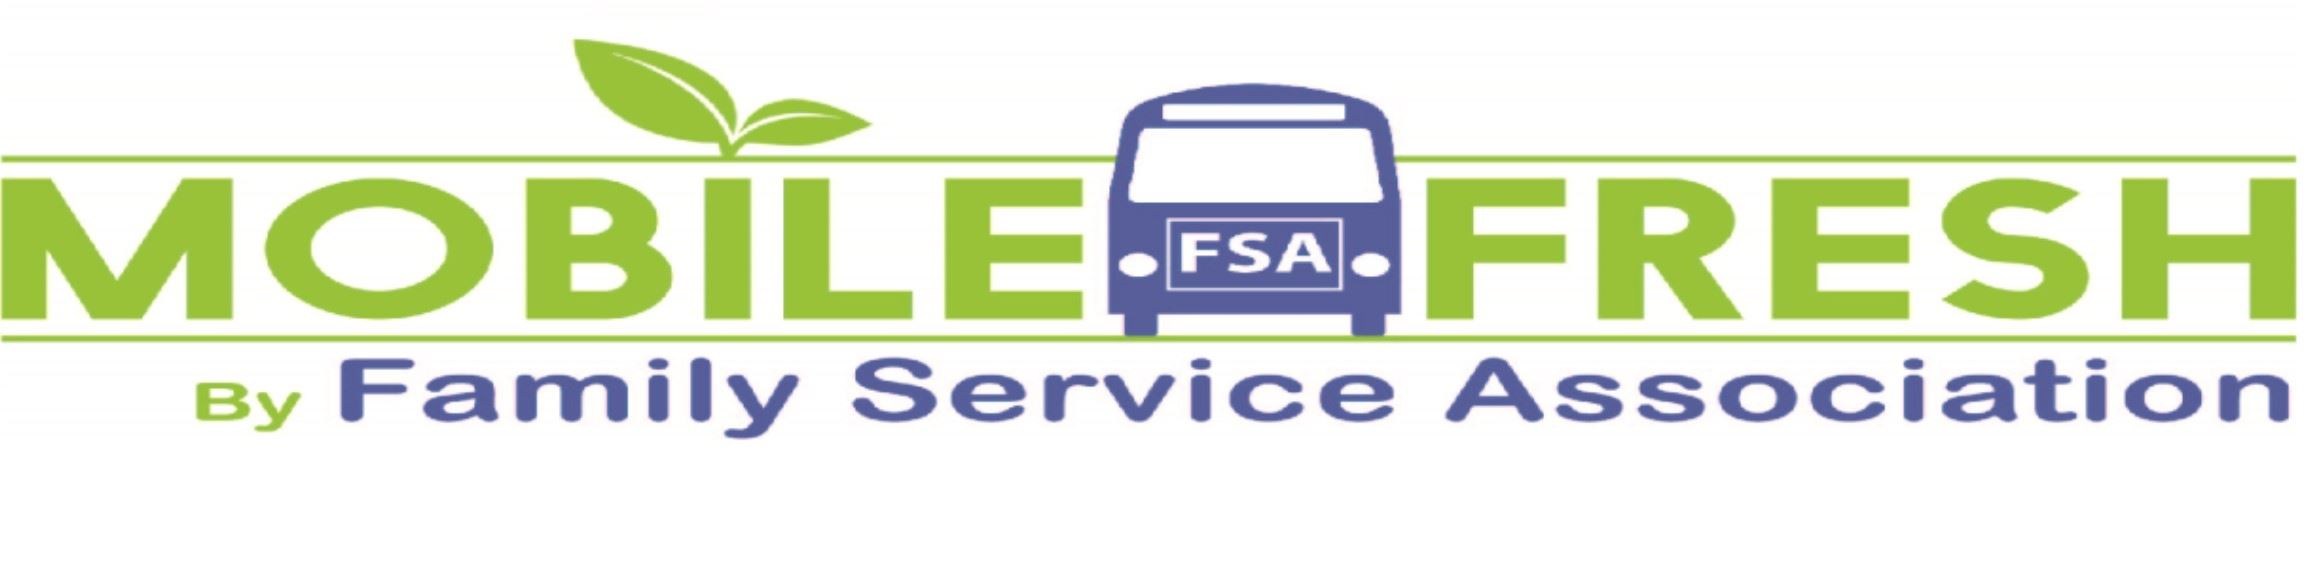 Mobile Fresh Bus Logo